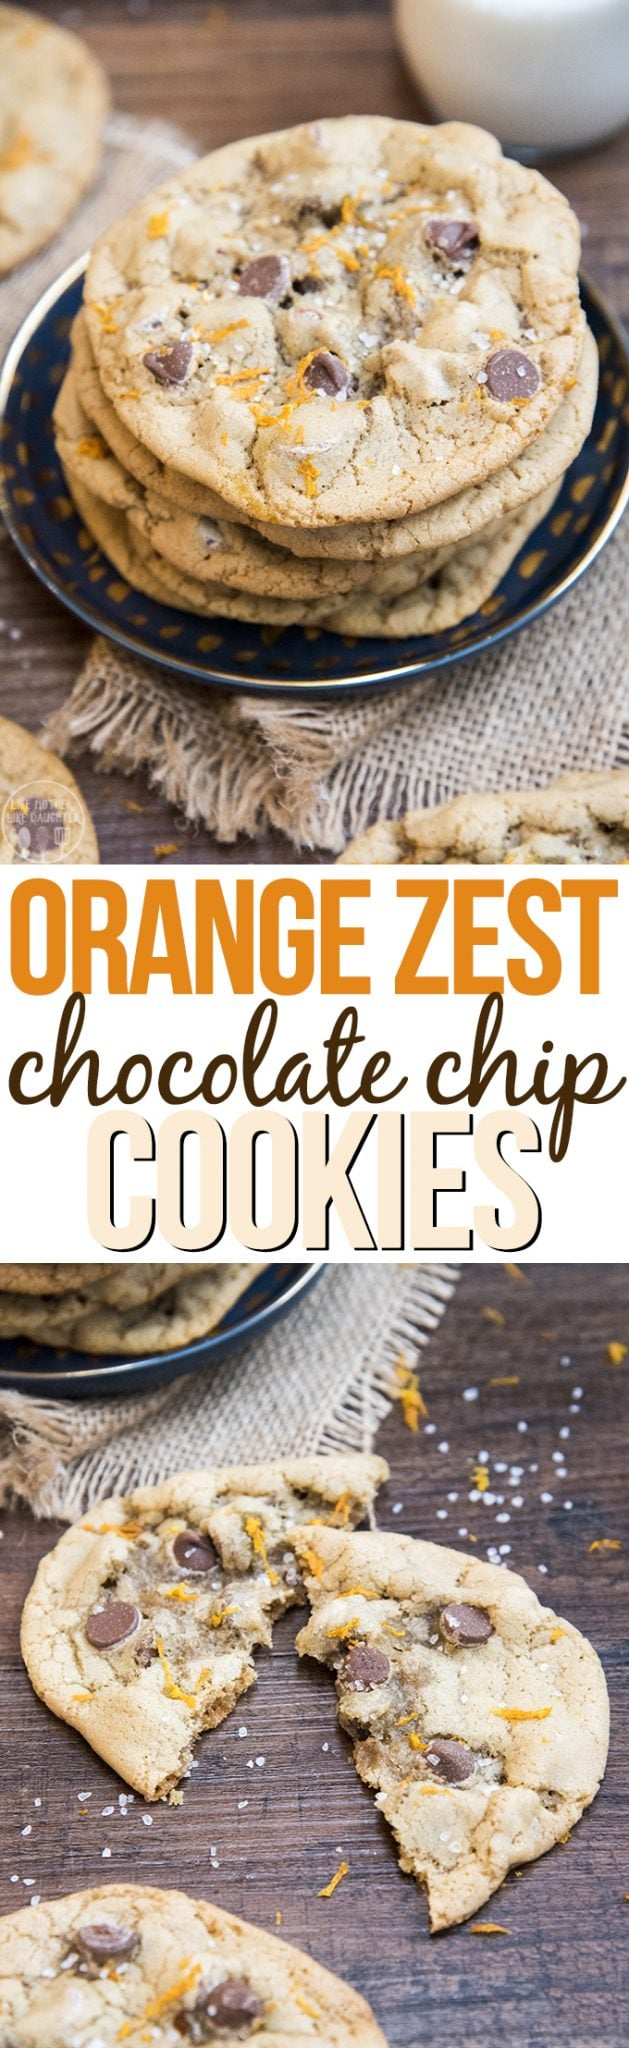 These orange zest chocolate chip cookies, are amazing chewy chocolate chip cookies topped with just a little orange zest at the end for the perfect citrus flavor burst.